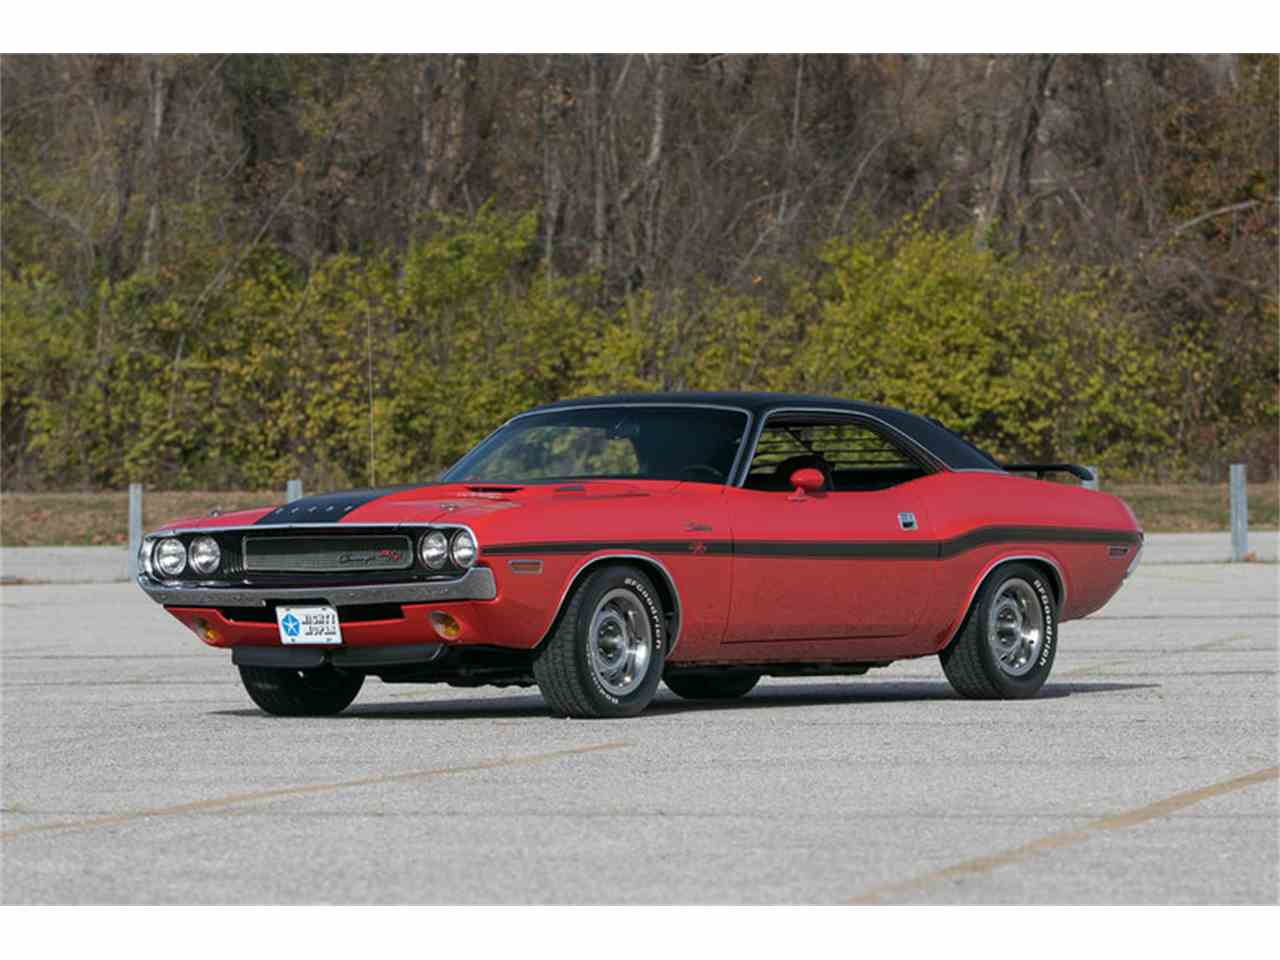 Large Picture of Classic 1970 Challenger R/T located in St. Charles Missouri Offered by Fast Lane Classic Cars Inc. - MF41